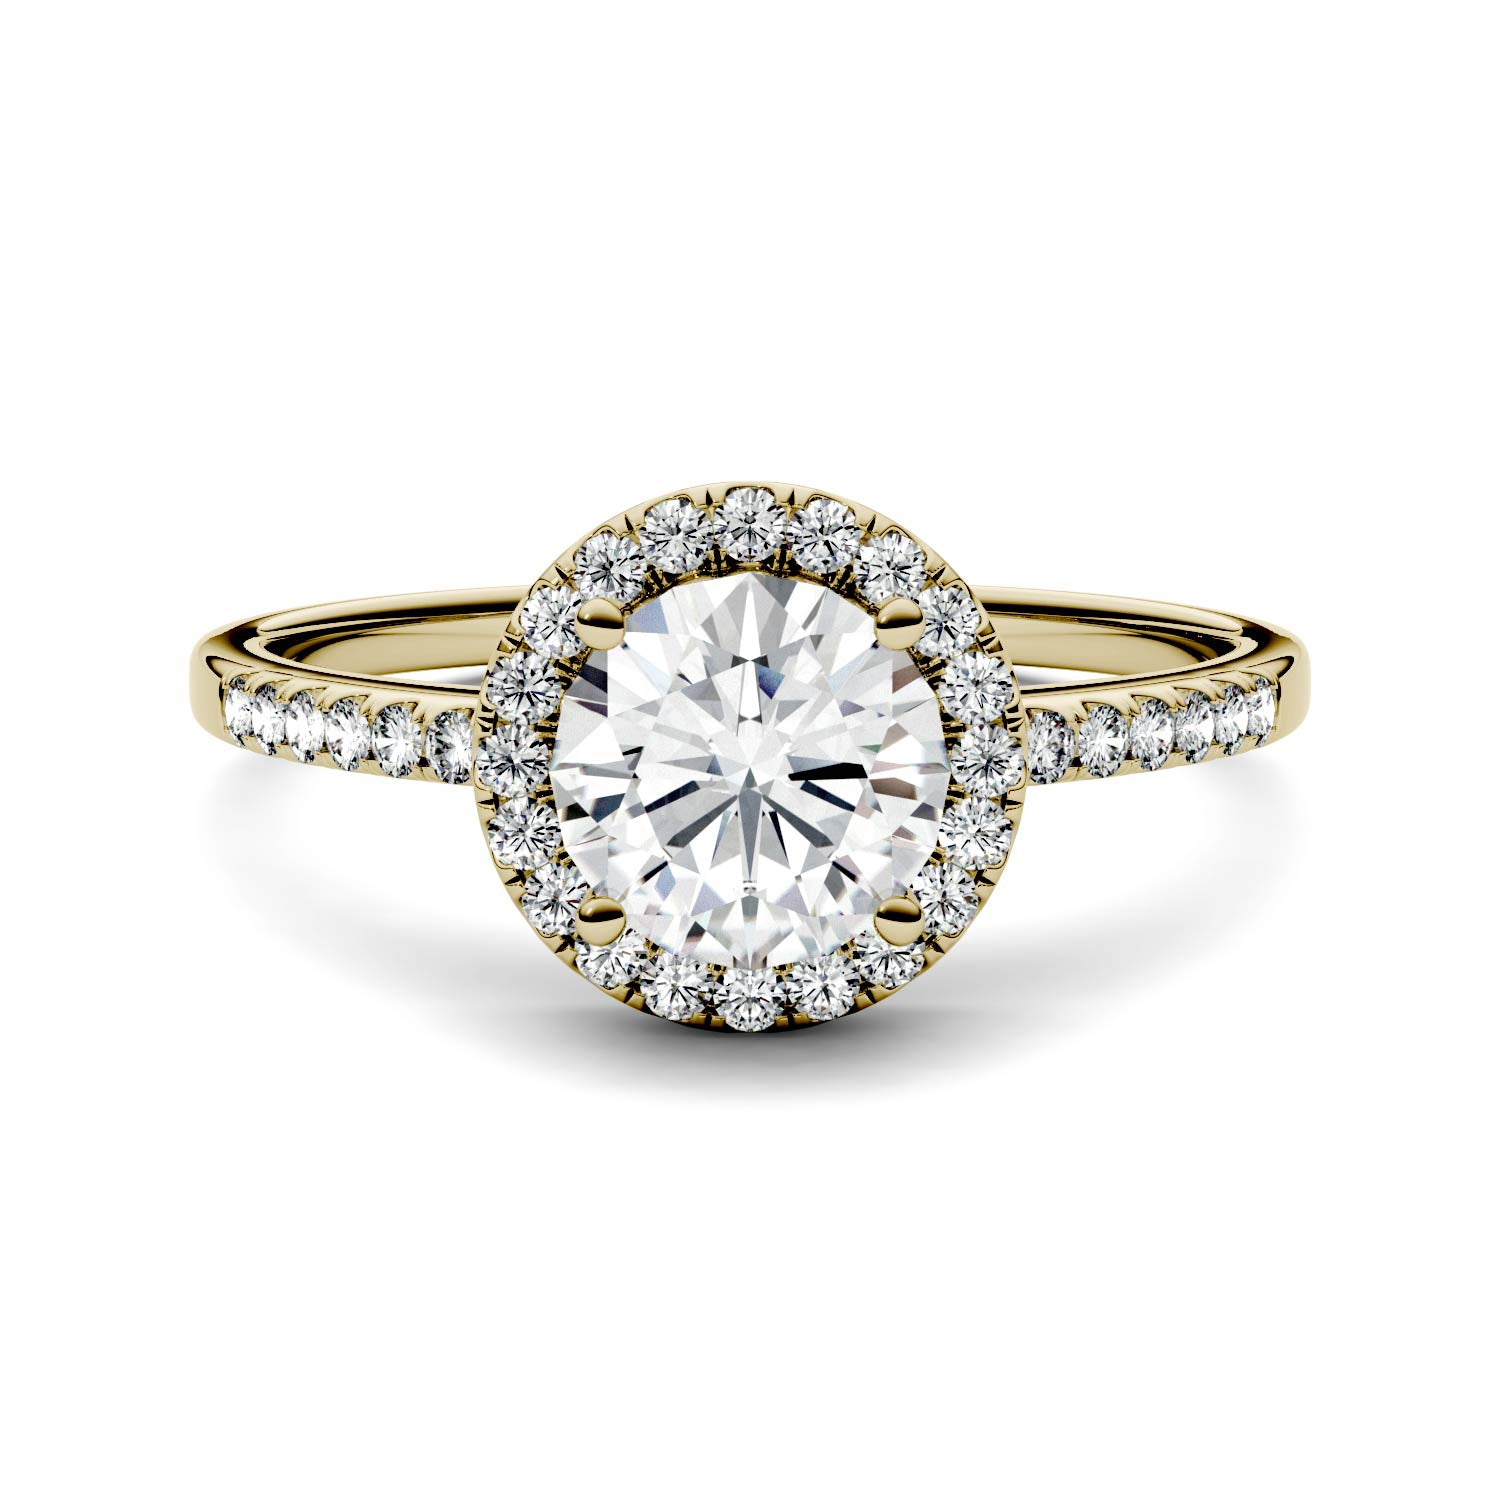 Charles & Colvard Moissanite Halo Engagement Ring in Yellow Gold-612261 - Jewelry by Johan